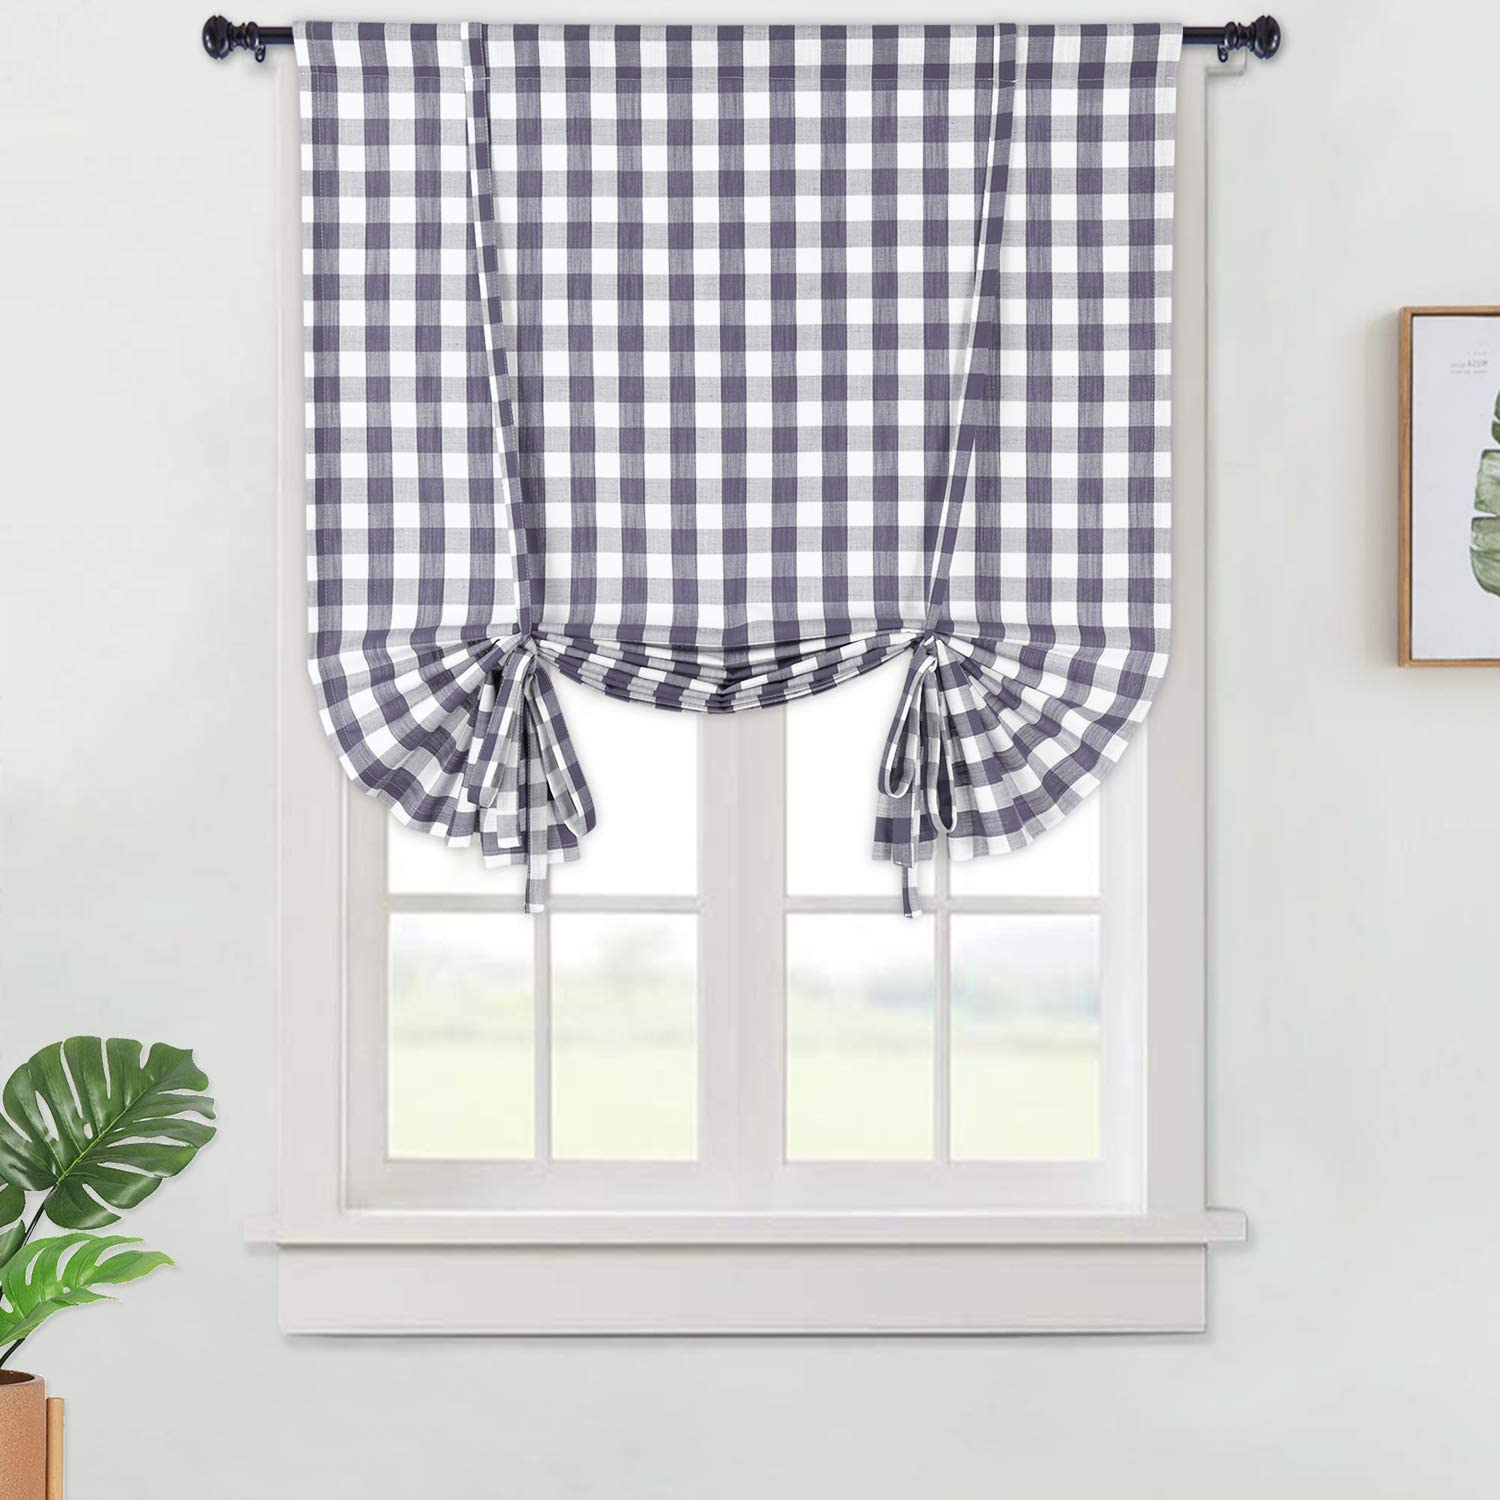 Haperlare Grey Tie Up Curtains in Gingham Plaid Check Fabric, Buffalo Plaid Pattern Farmhouse Tie Up Shades Thick Yarn Dyed Kitchen Window Curtains Cafe Curtains, 42